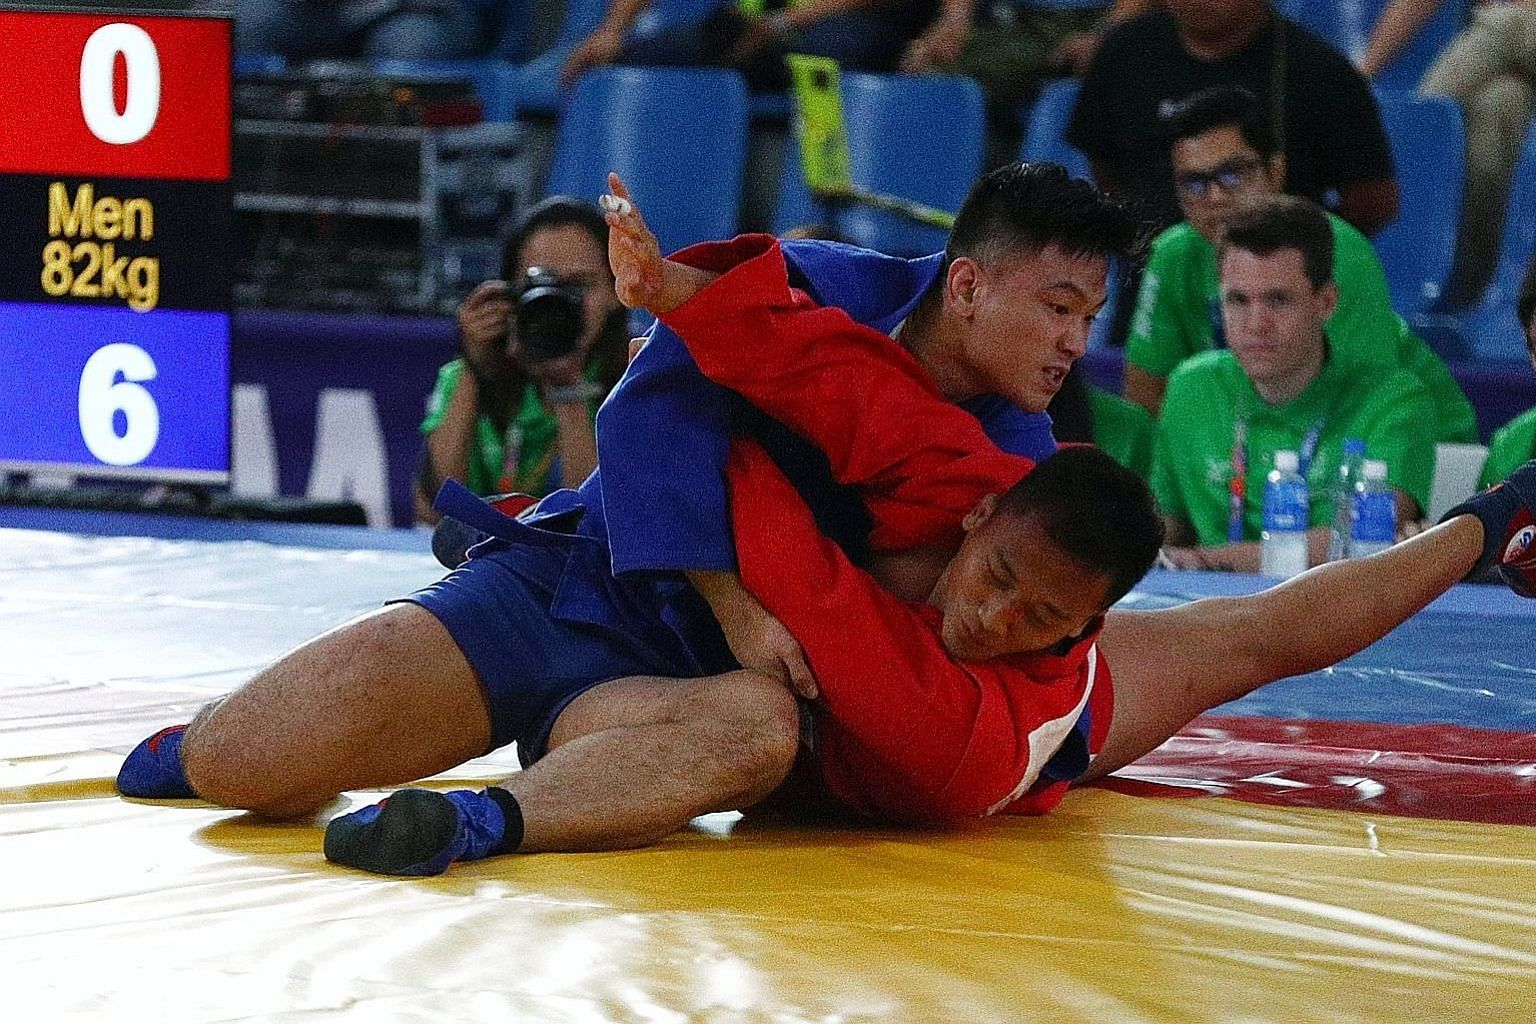 Gary Chow competing at last year's SEA Games in the sambo 82kg event. The Singaporean, who won silver in the Philippines, had pulled out of the judo squad for the Games. LIANHE ZAOBAO FILE PHOTO